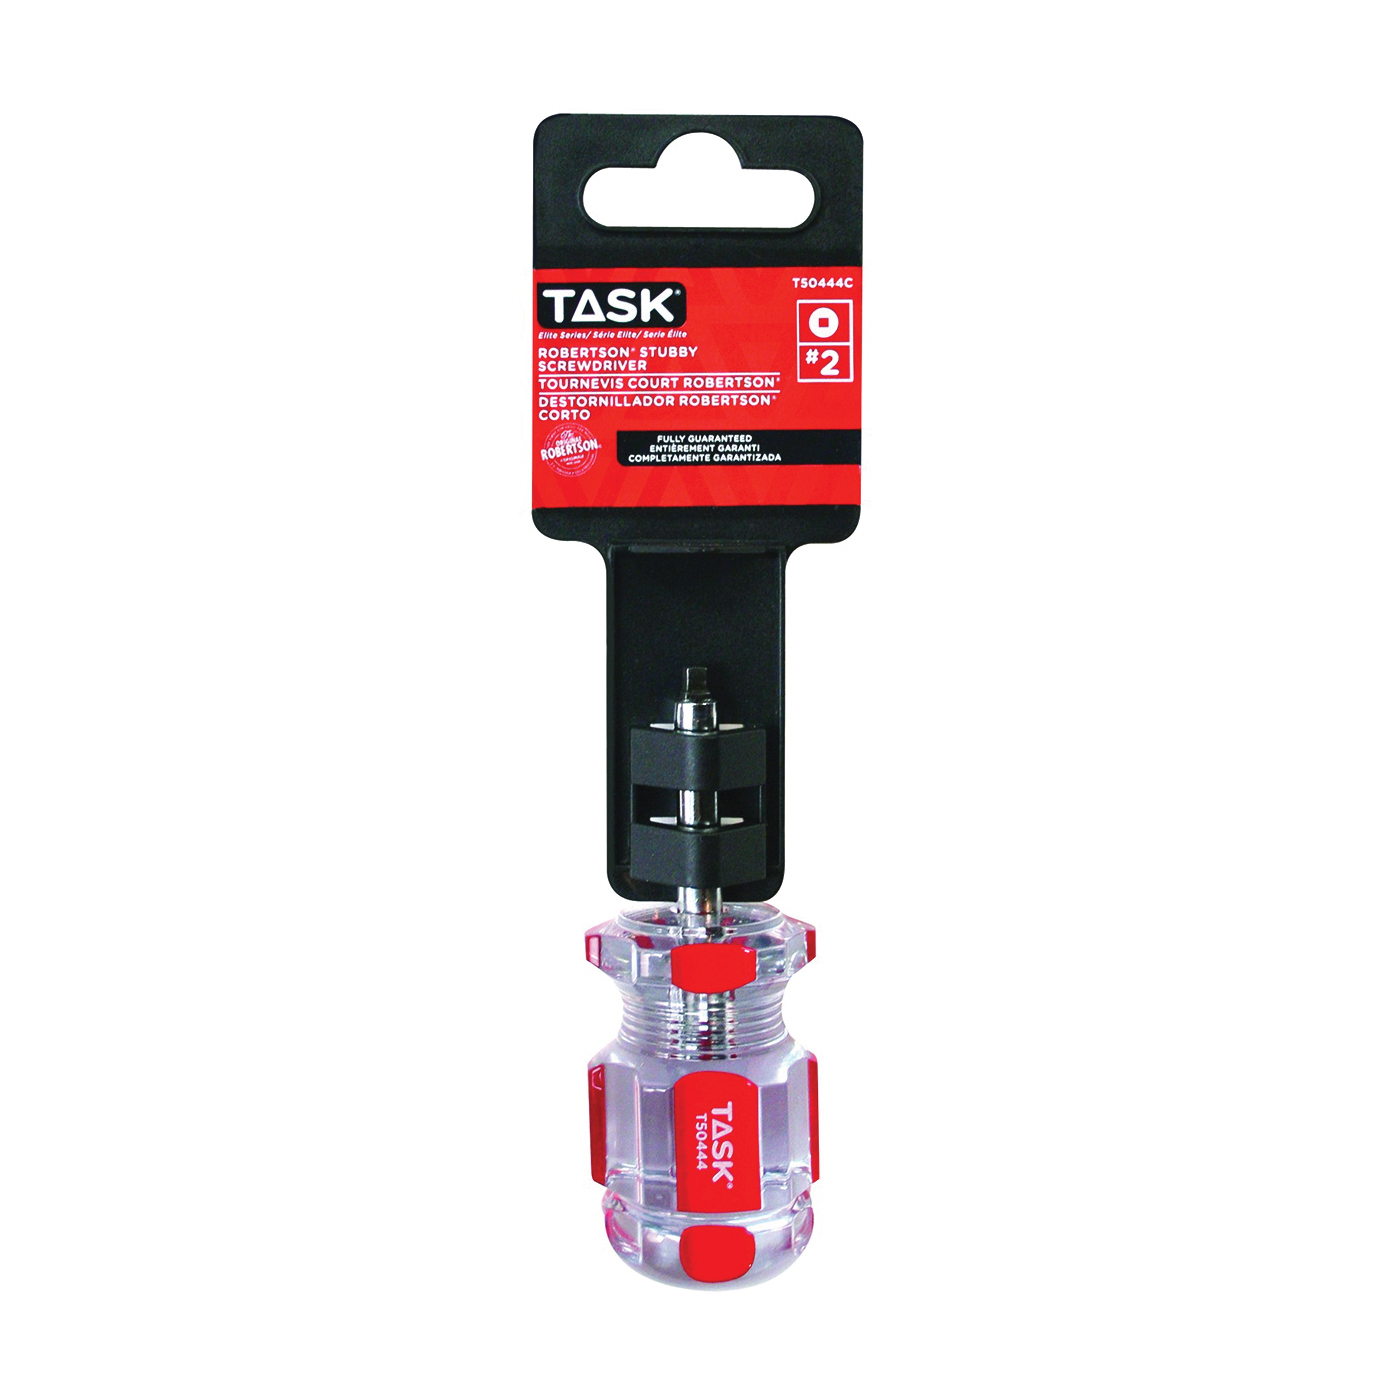 Picture of TASK T50444C Screwdriver, #2 Drive, Robertson Drive, 1-1/2 in L Shank, Cellulose Acetate Handle, Hard Grip Handle